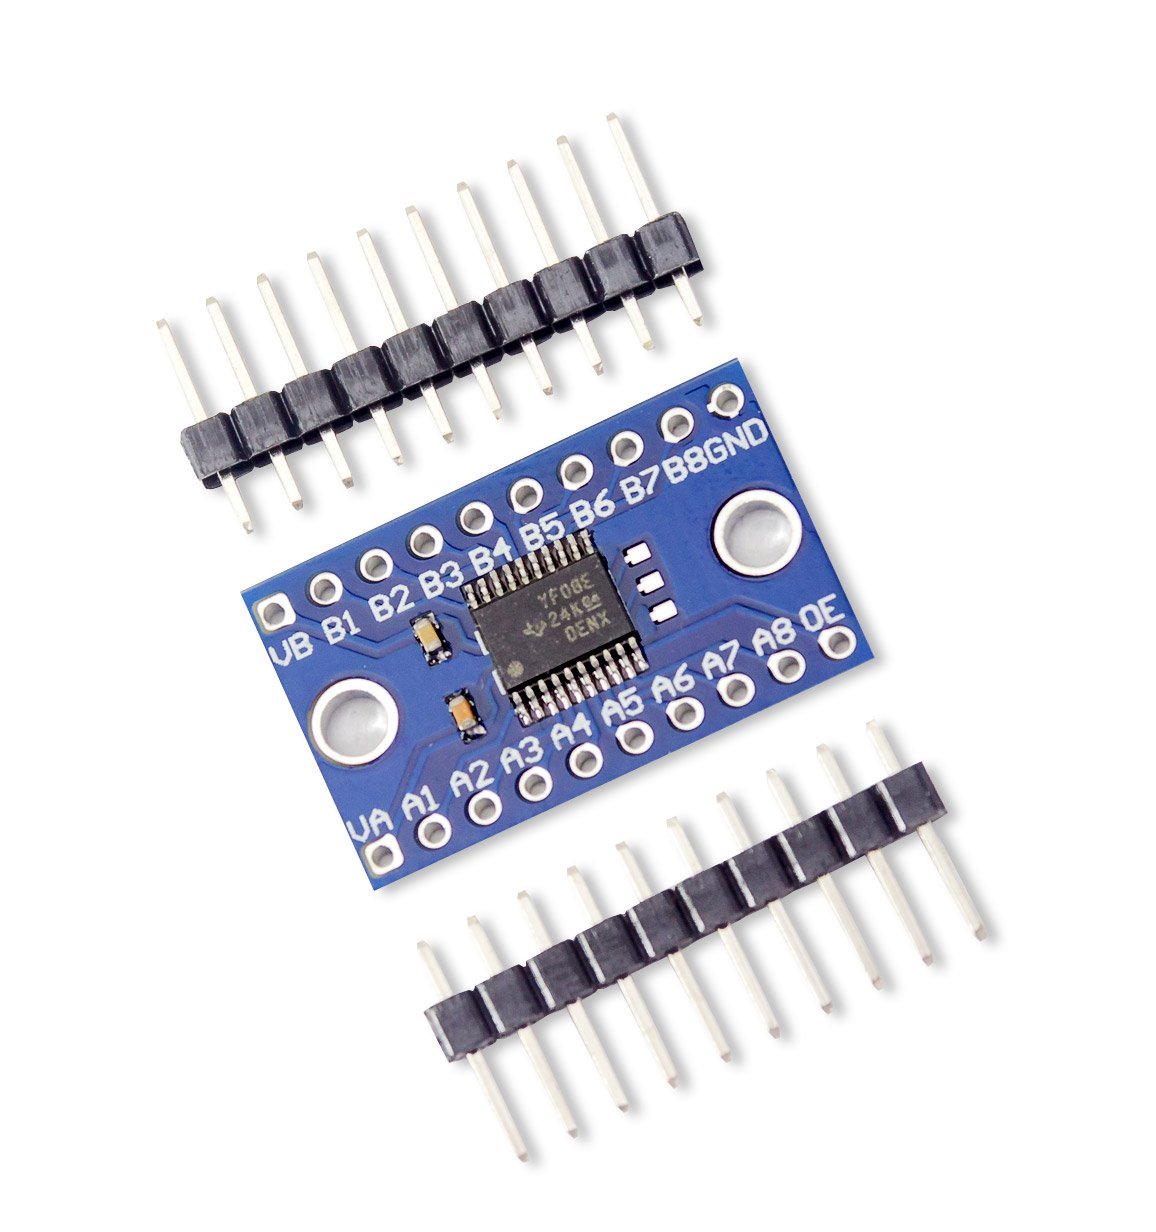 5  V 3.3  V 8-Channel Bi Directional Logic Level Converter TXB0108  Microcontroller for Arduino Raspberry pi MissBirdler 4260509784351